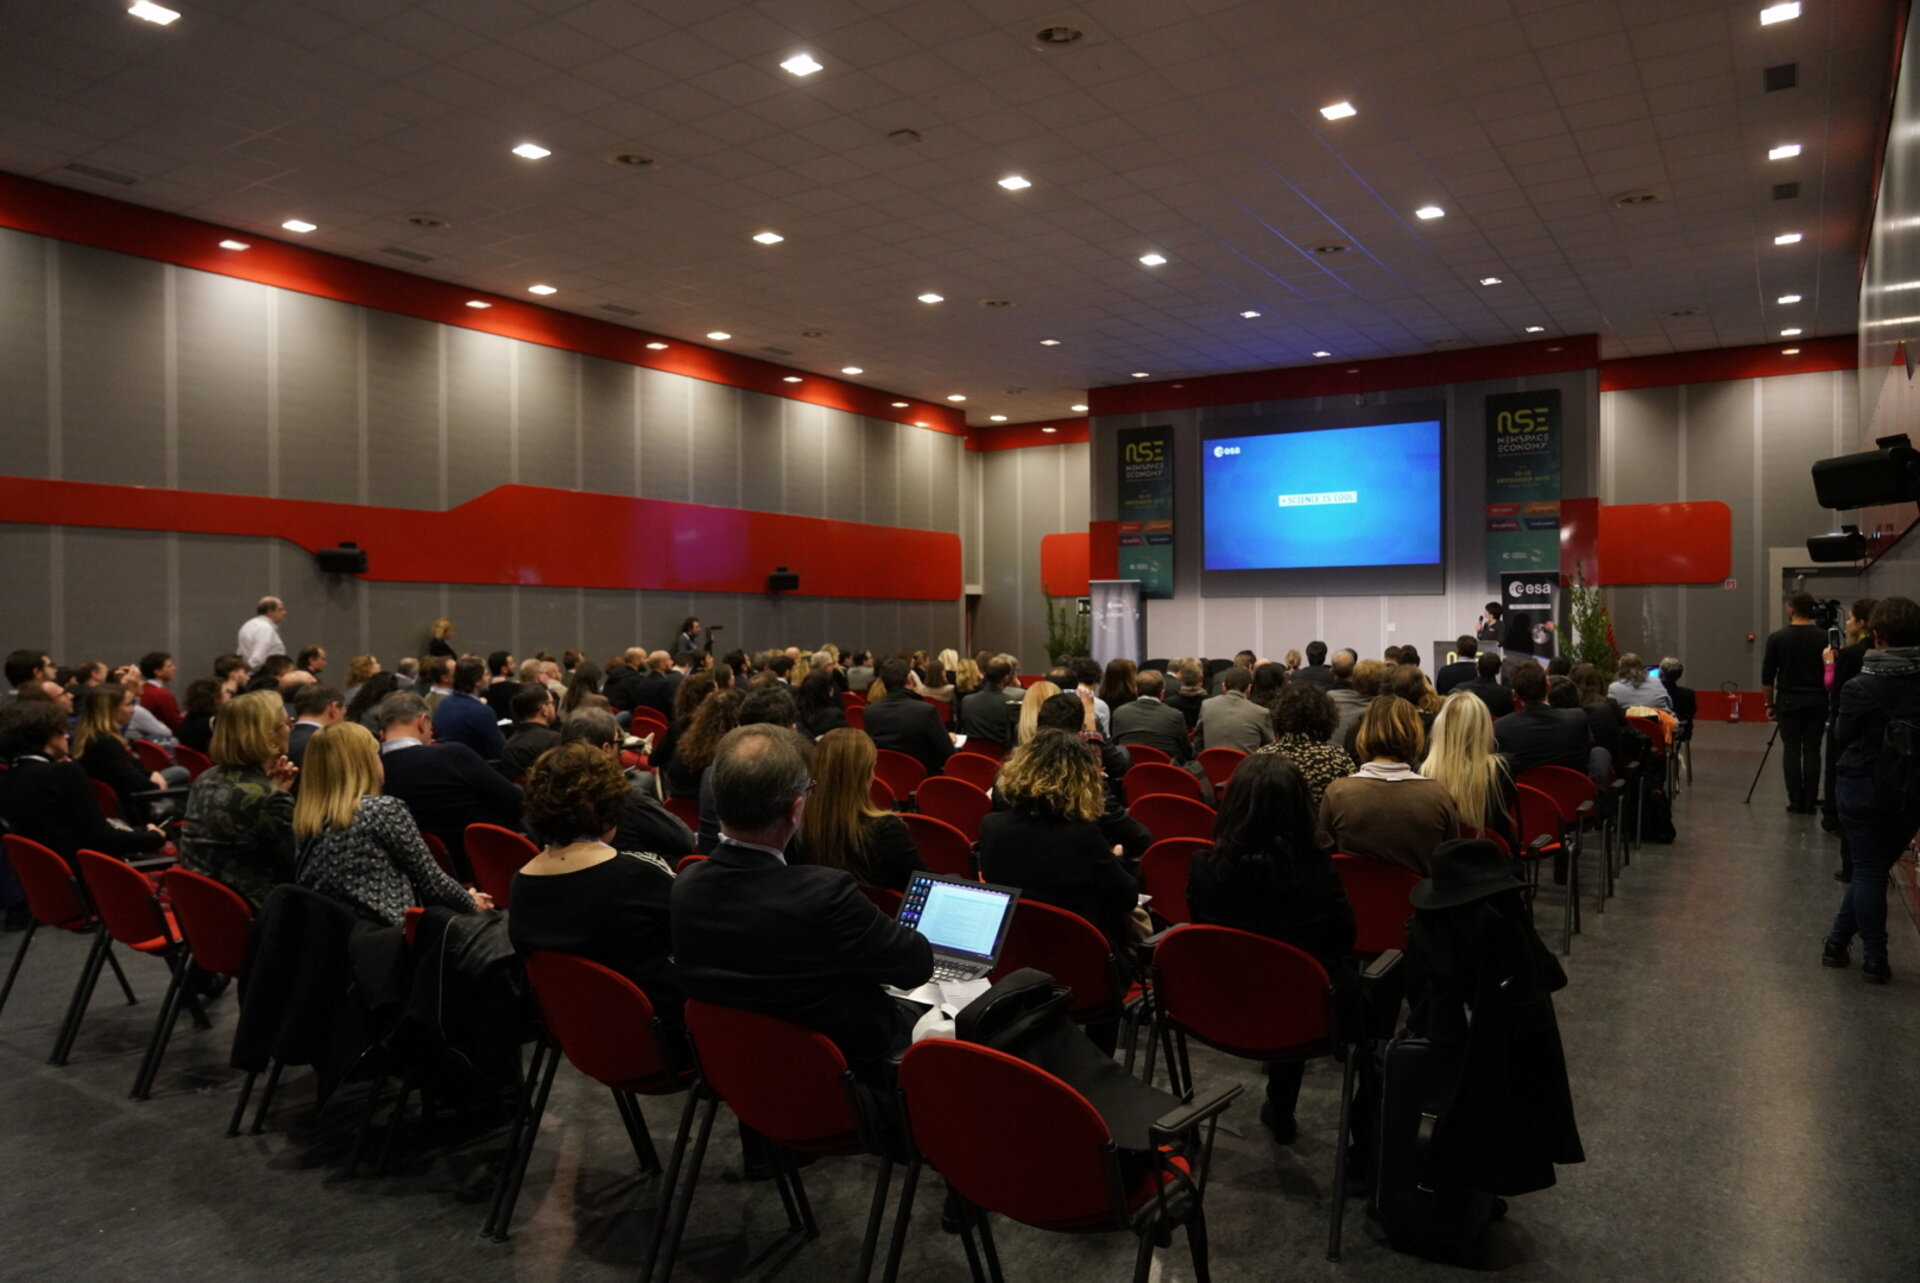 A Global Space Economic Forum was held at the New Space Economy European Expoforum